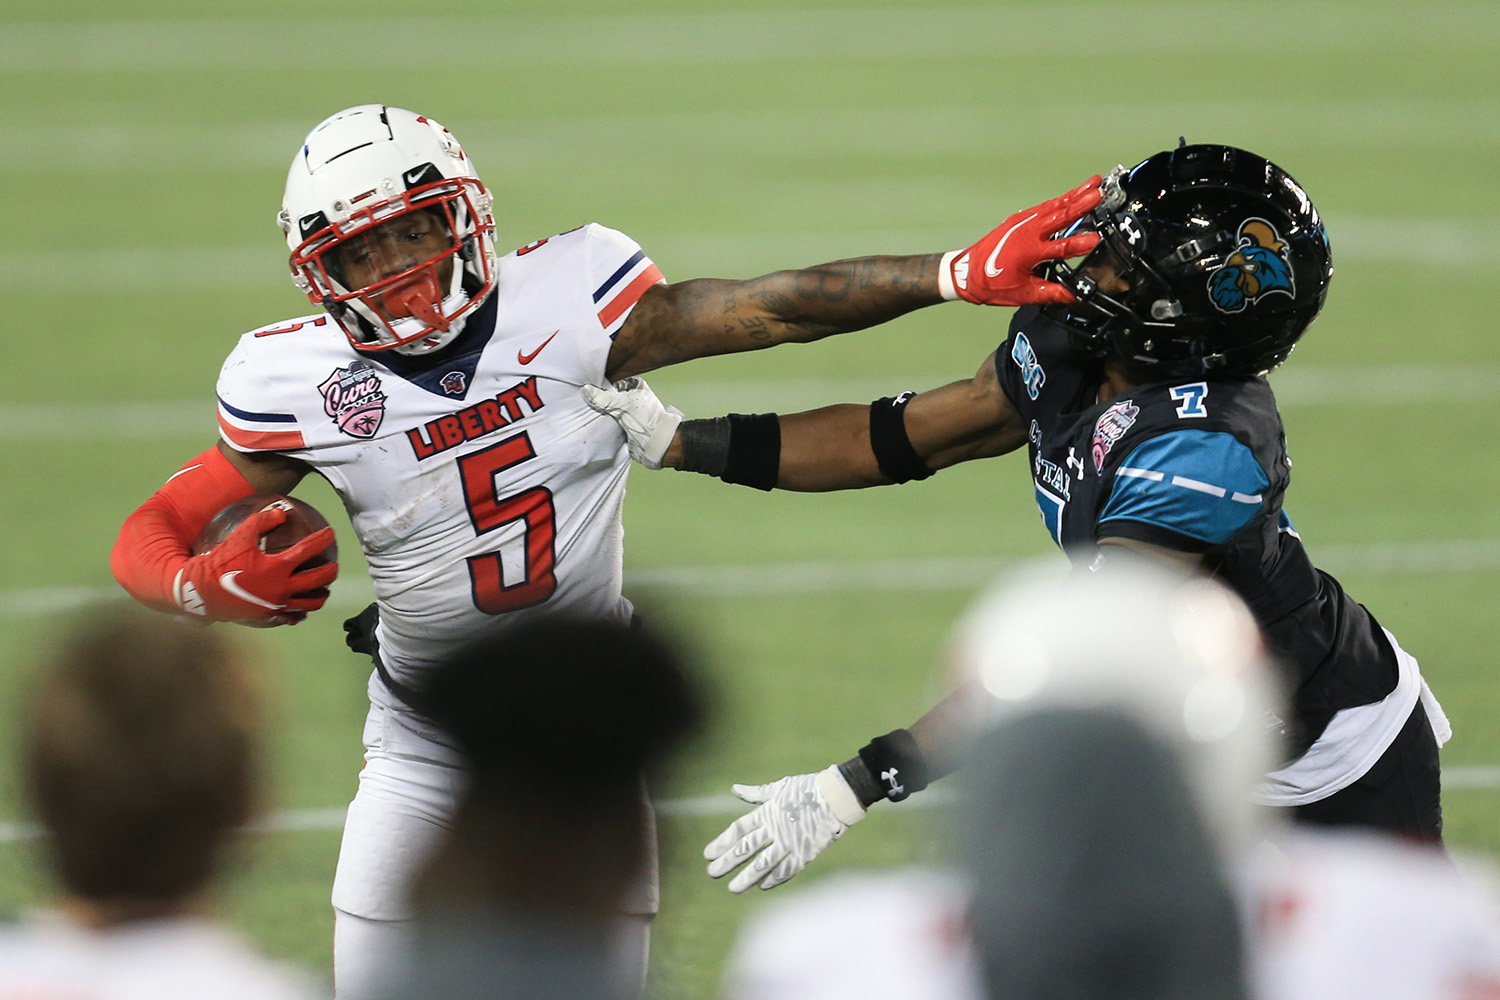 Liberty wide receiver DJ Stubbs (5) stiff arms Coastal Carolina cornerback D'Jordan Strong (7) during the second half of the Cure Bowl NCAA college football game Saturday, Dec. 26, 2020, in Orlando, Fla. (AP Photo/Matt Stamey)